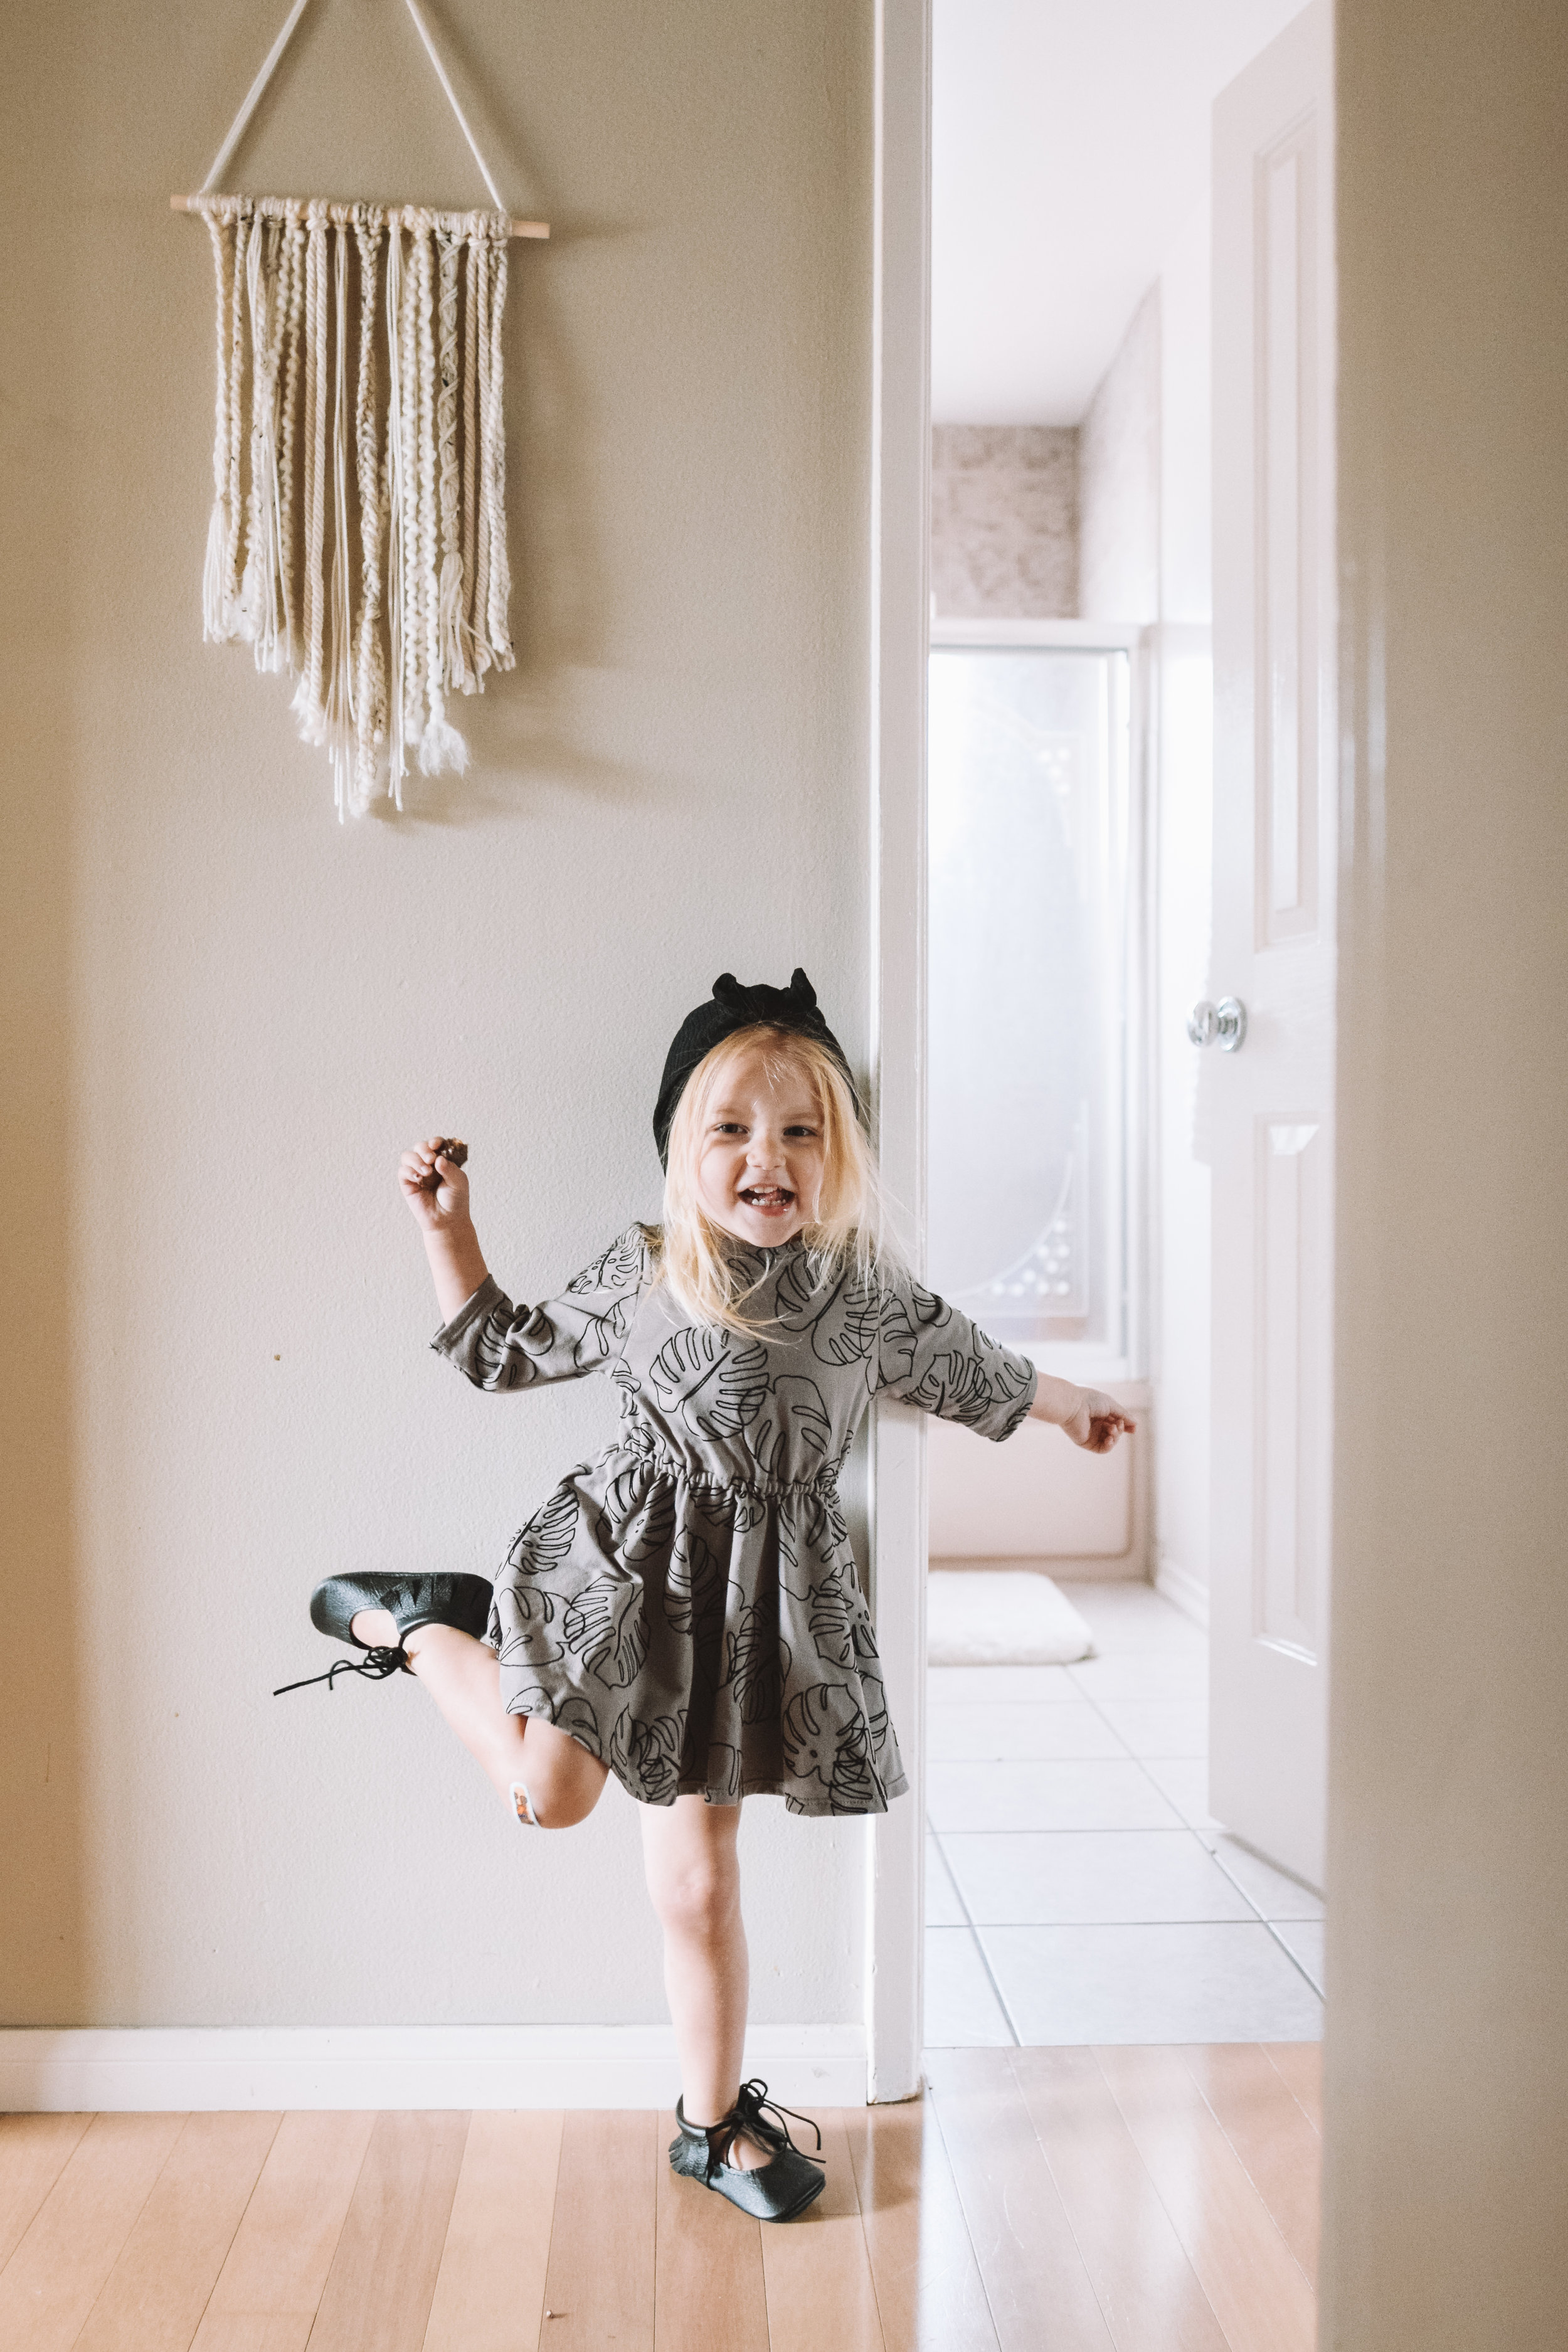 Cute Kids Dresses Small Shop - The Overwhelmed Mommy Blogger